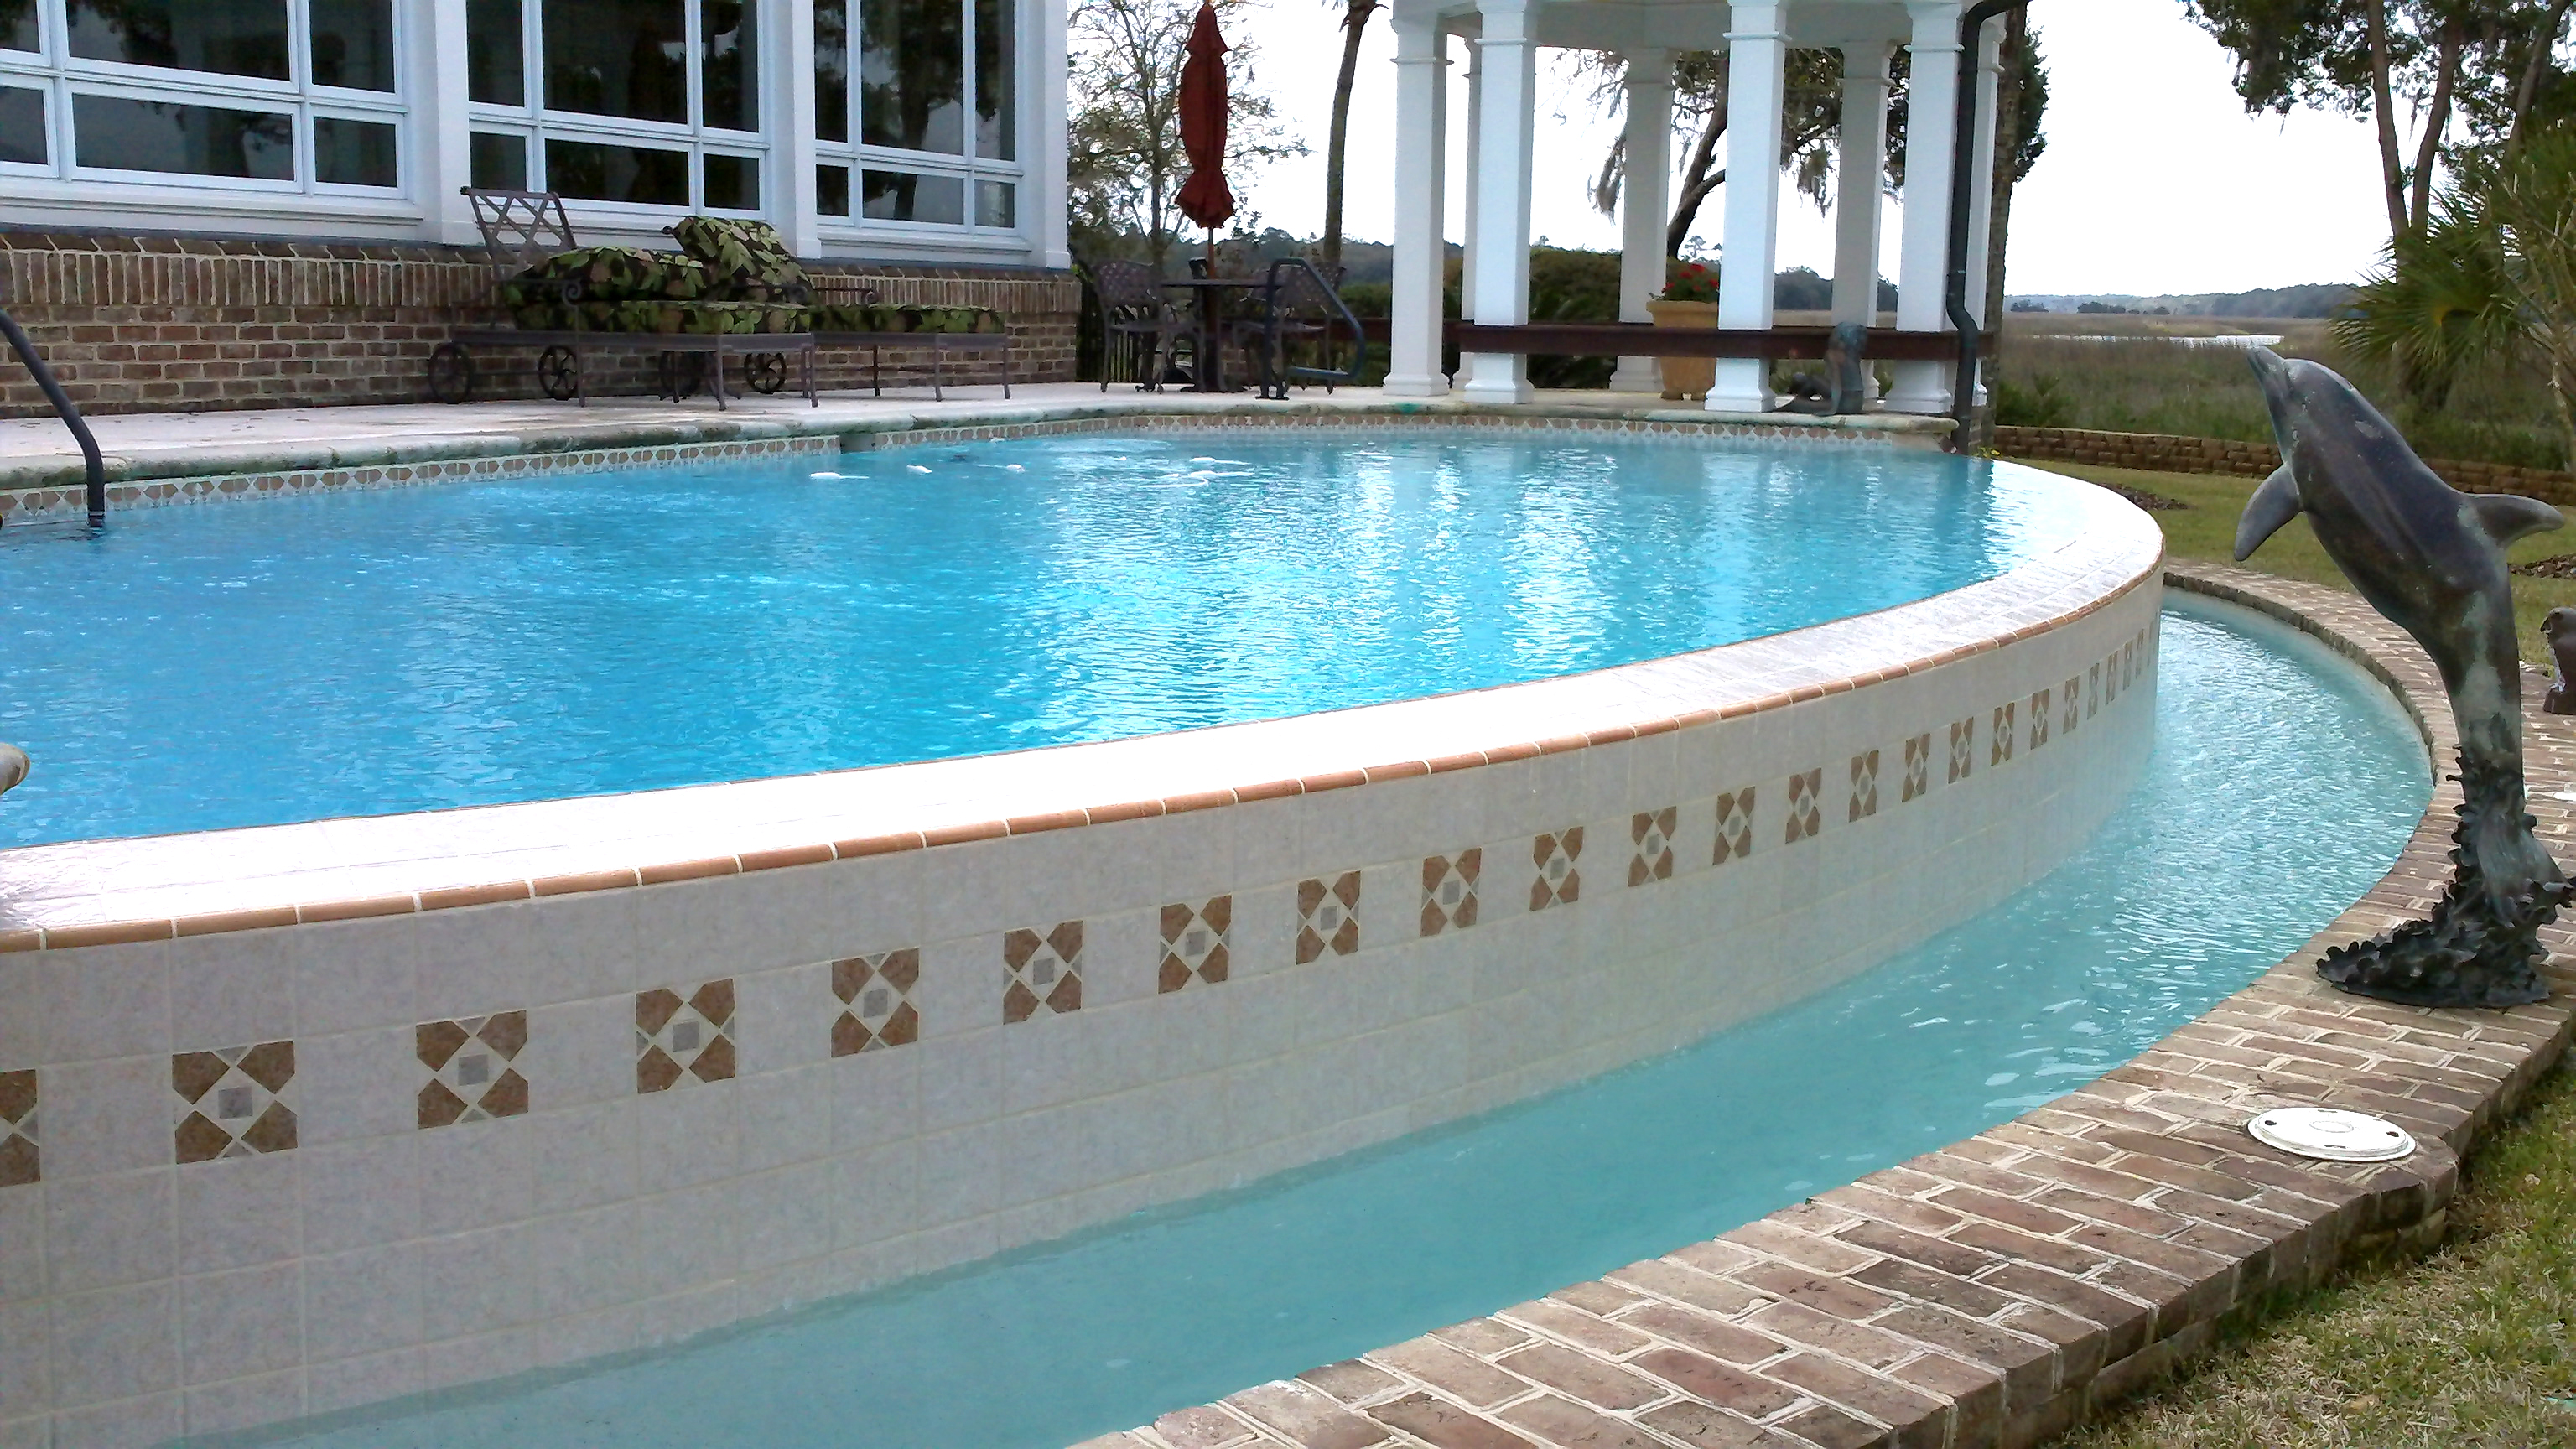 Types of pools we clean ejpoolservices for Different types of pools